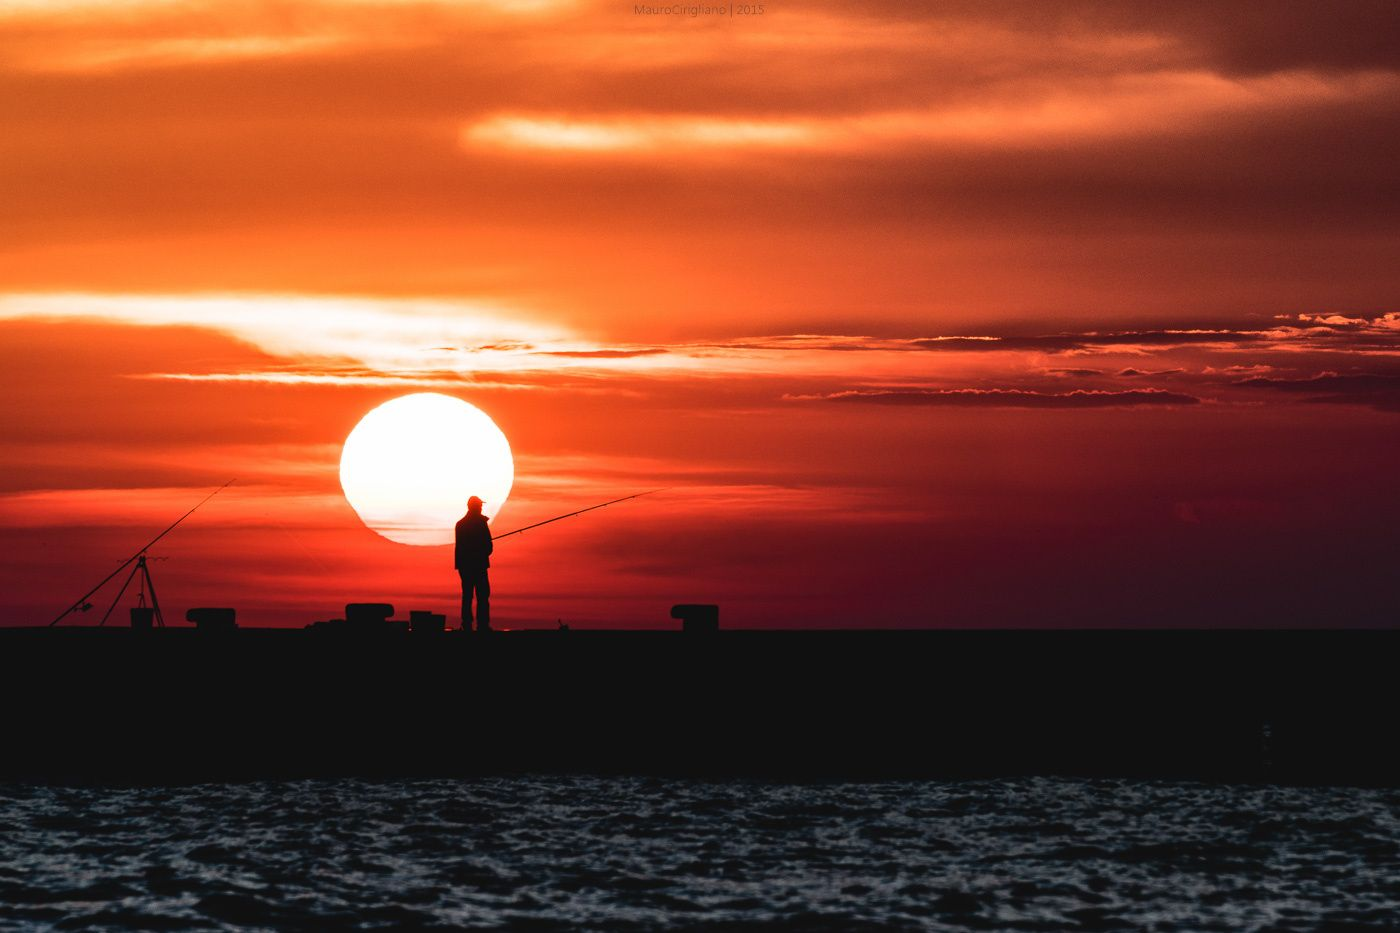 Fishing on the sunset by Mauro Cirigliano on 500px